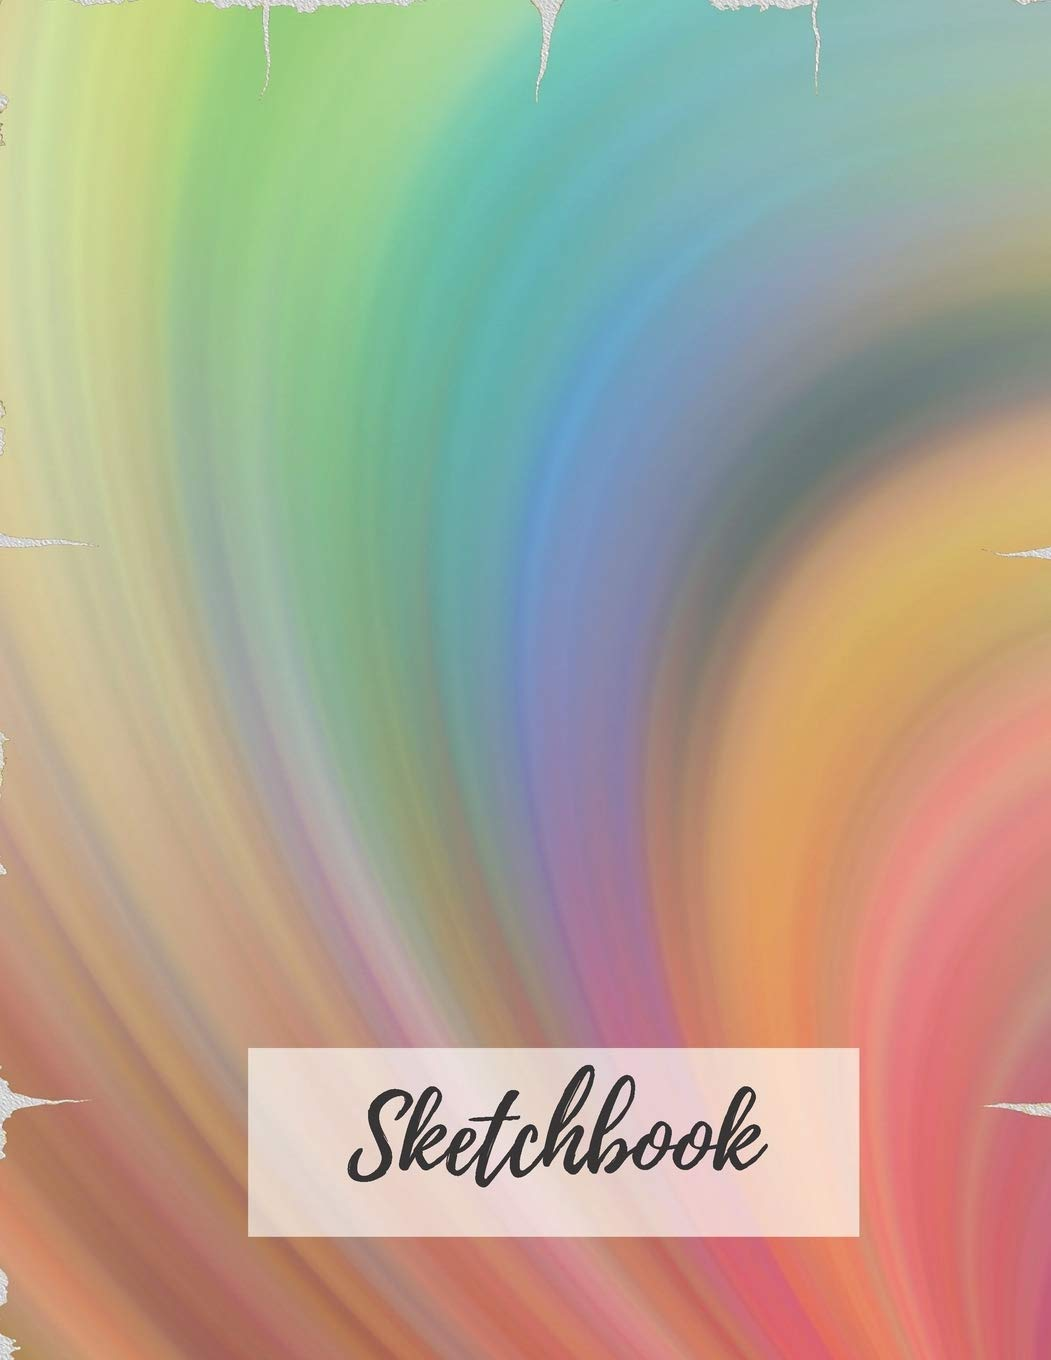 Buy Sketchbook Blank Large 110 Pages 8 5 X 11 In Colorful Rainbow Sketch Book For Drawing Or Sketching Rainbow Sketchbook To Draw And Journal Book Online At Low Prices In India